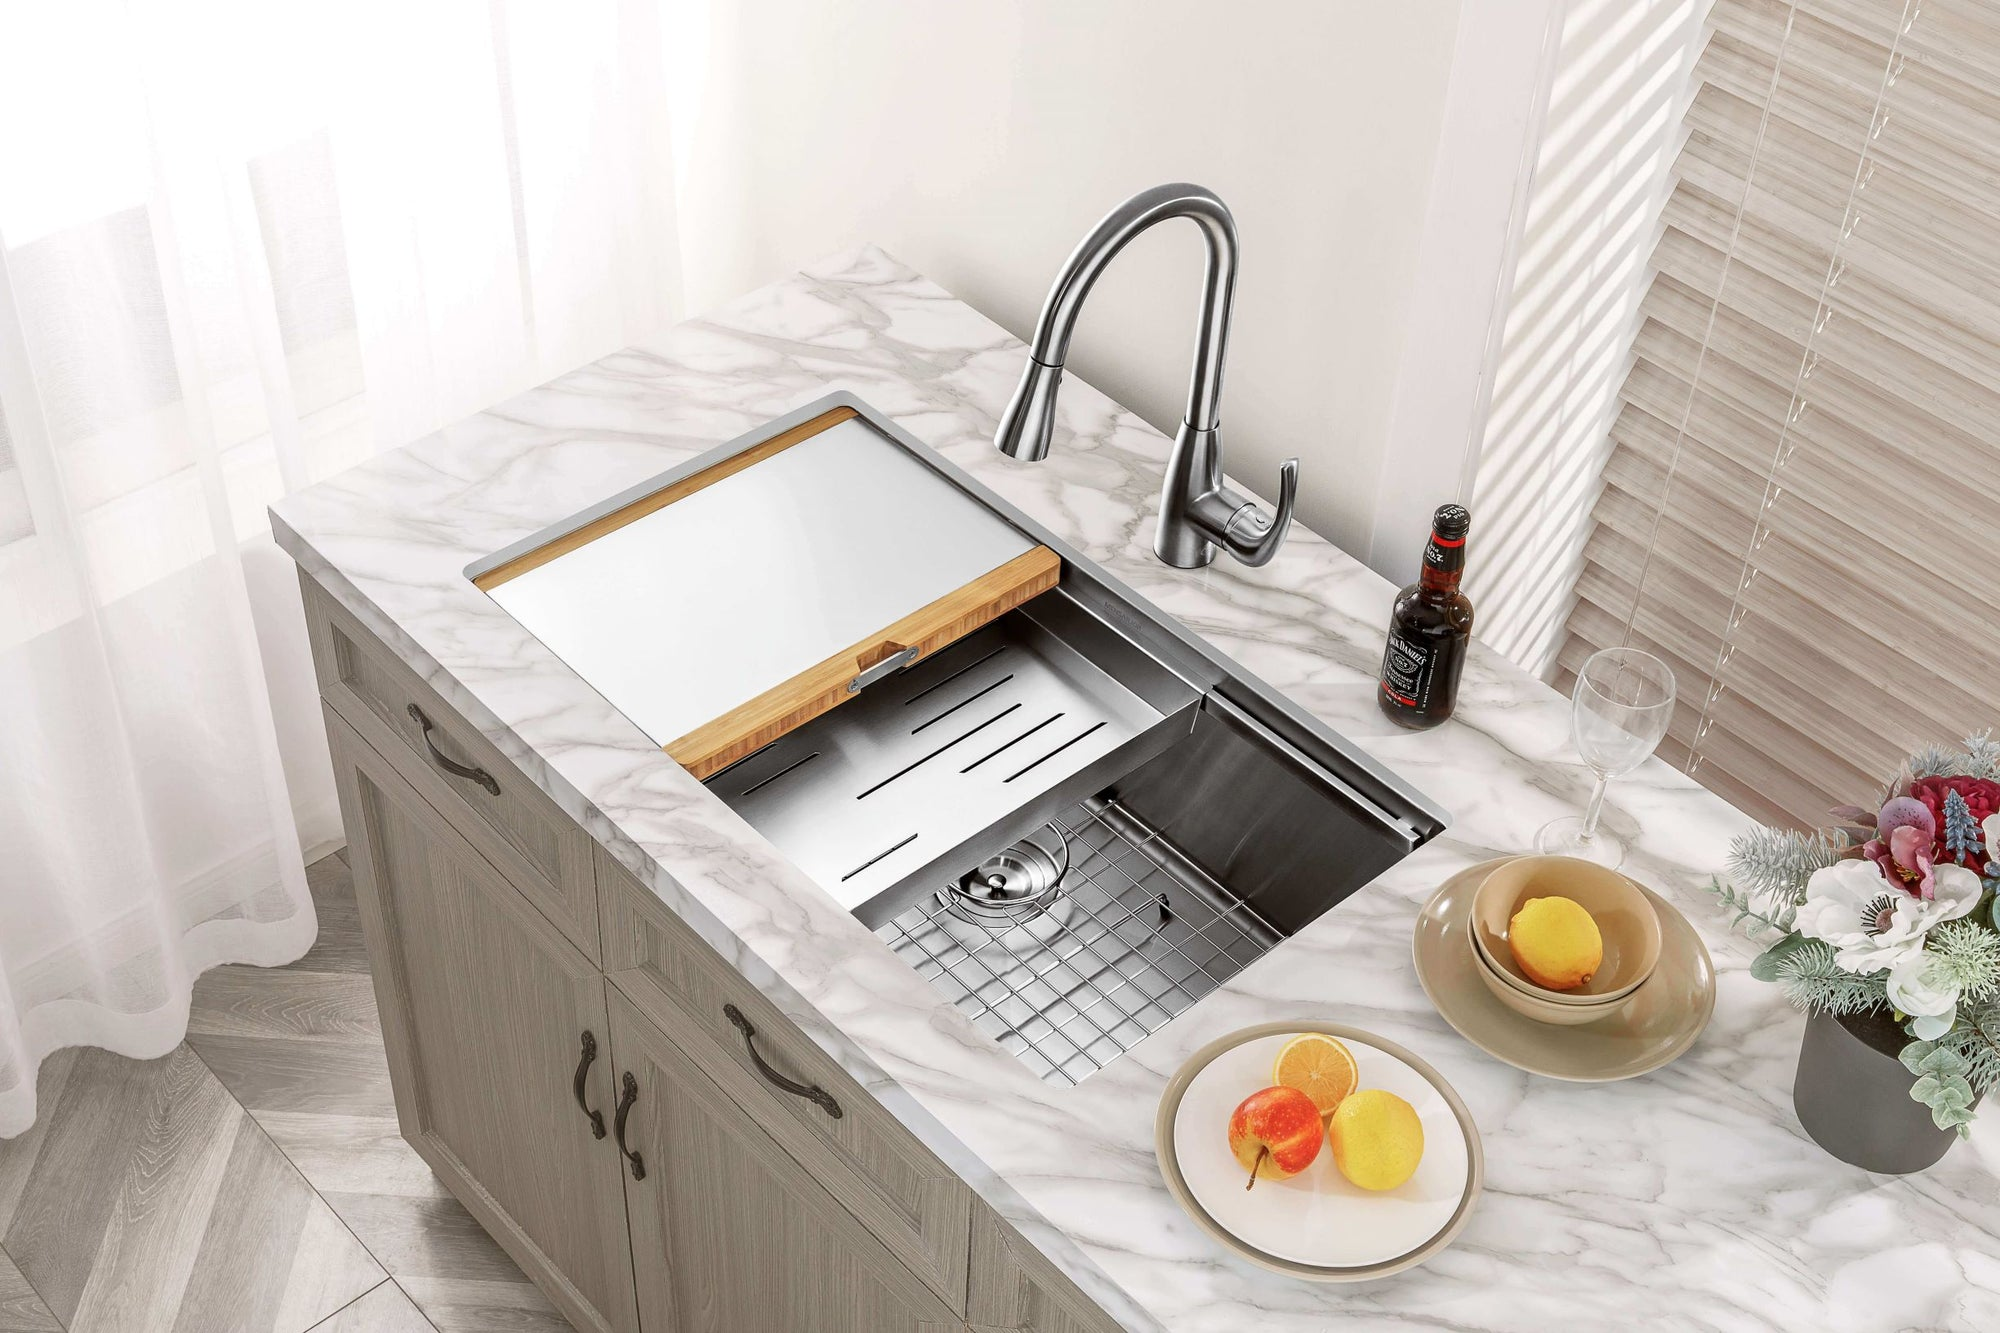 Mensarjor 32'' X 19'' Workstation Kitchen Sink